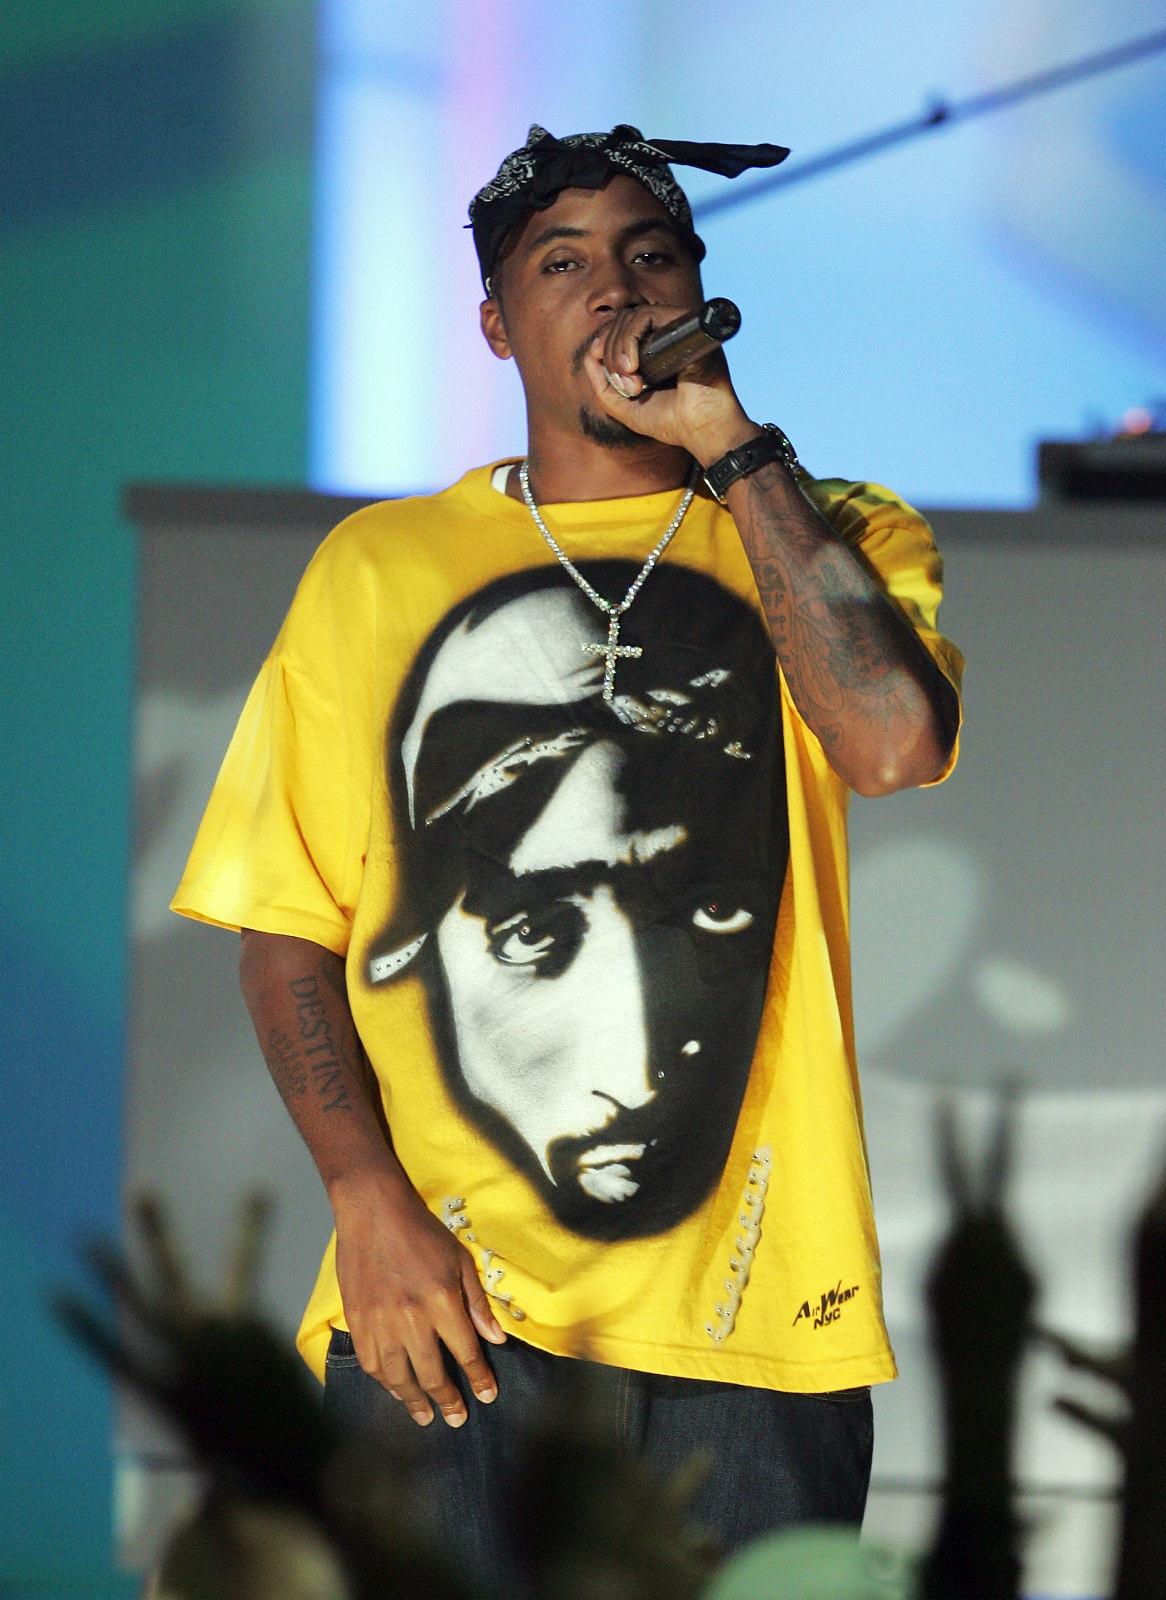 http://hiphopsmithsonian.com/blog/2013/9/13/tupac-nas-reflection-celebration